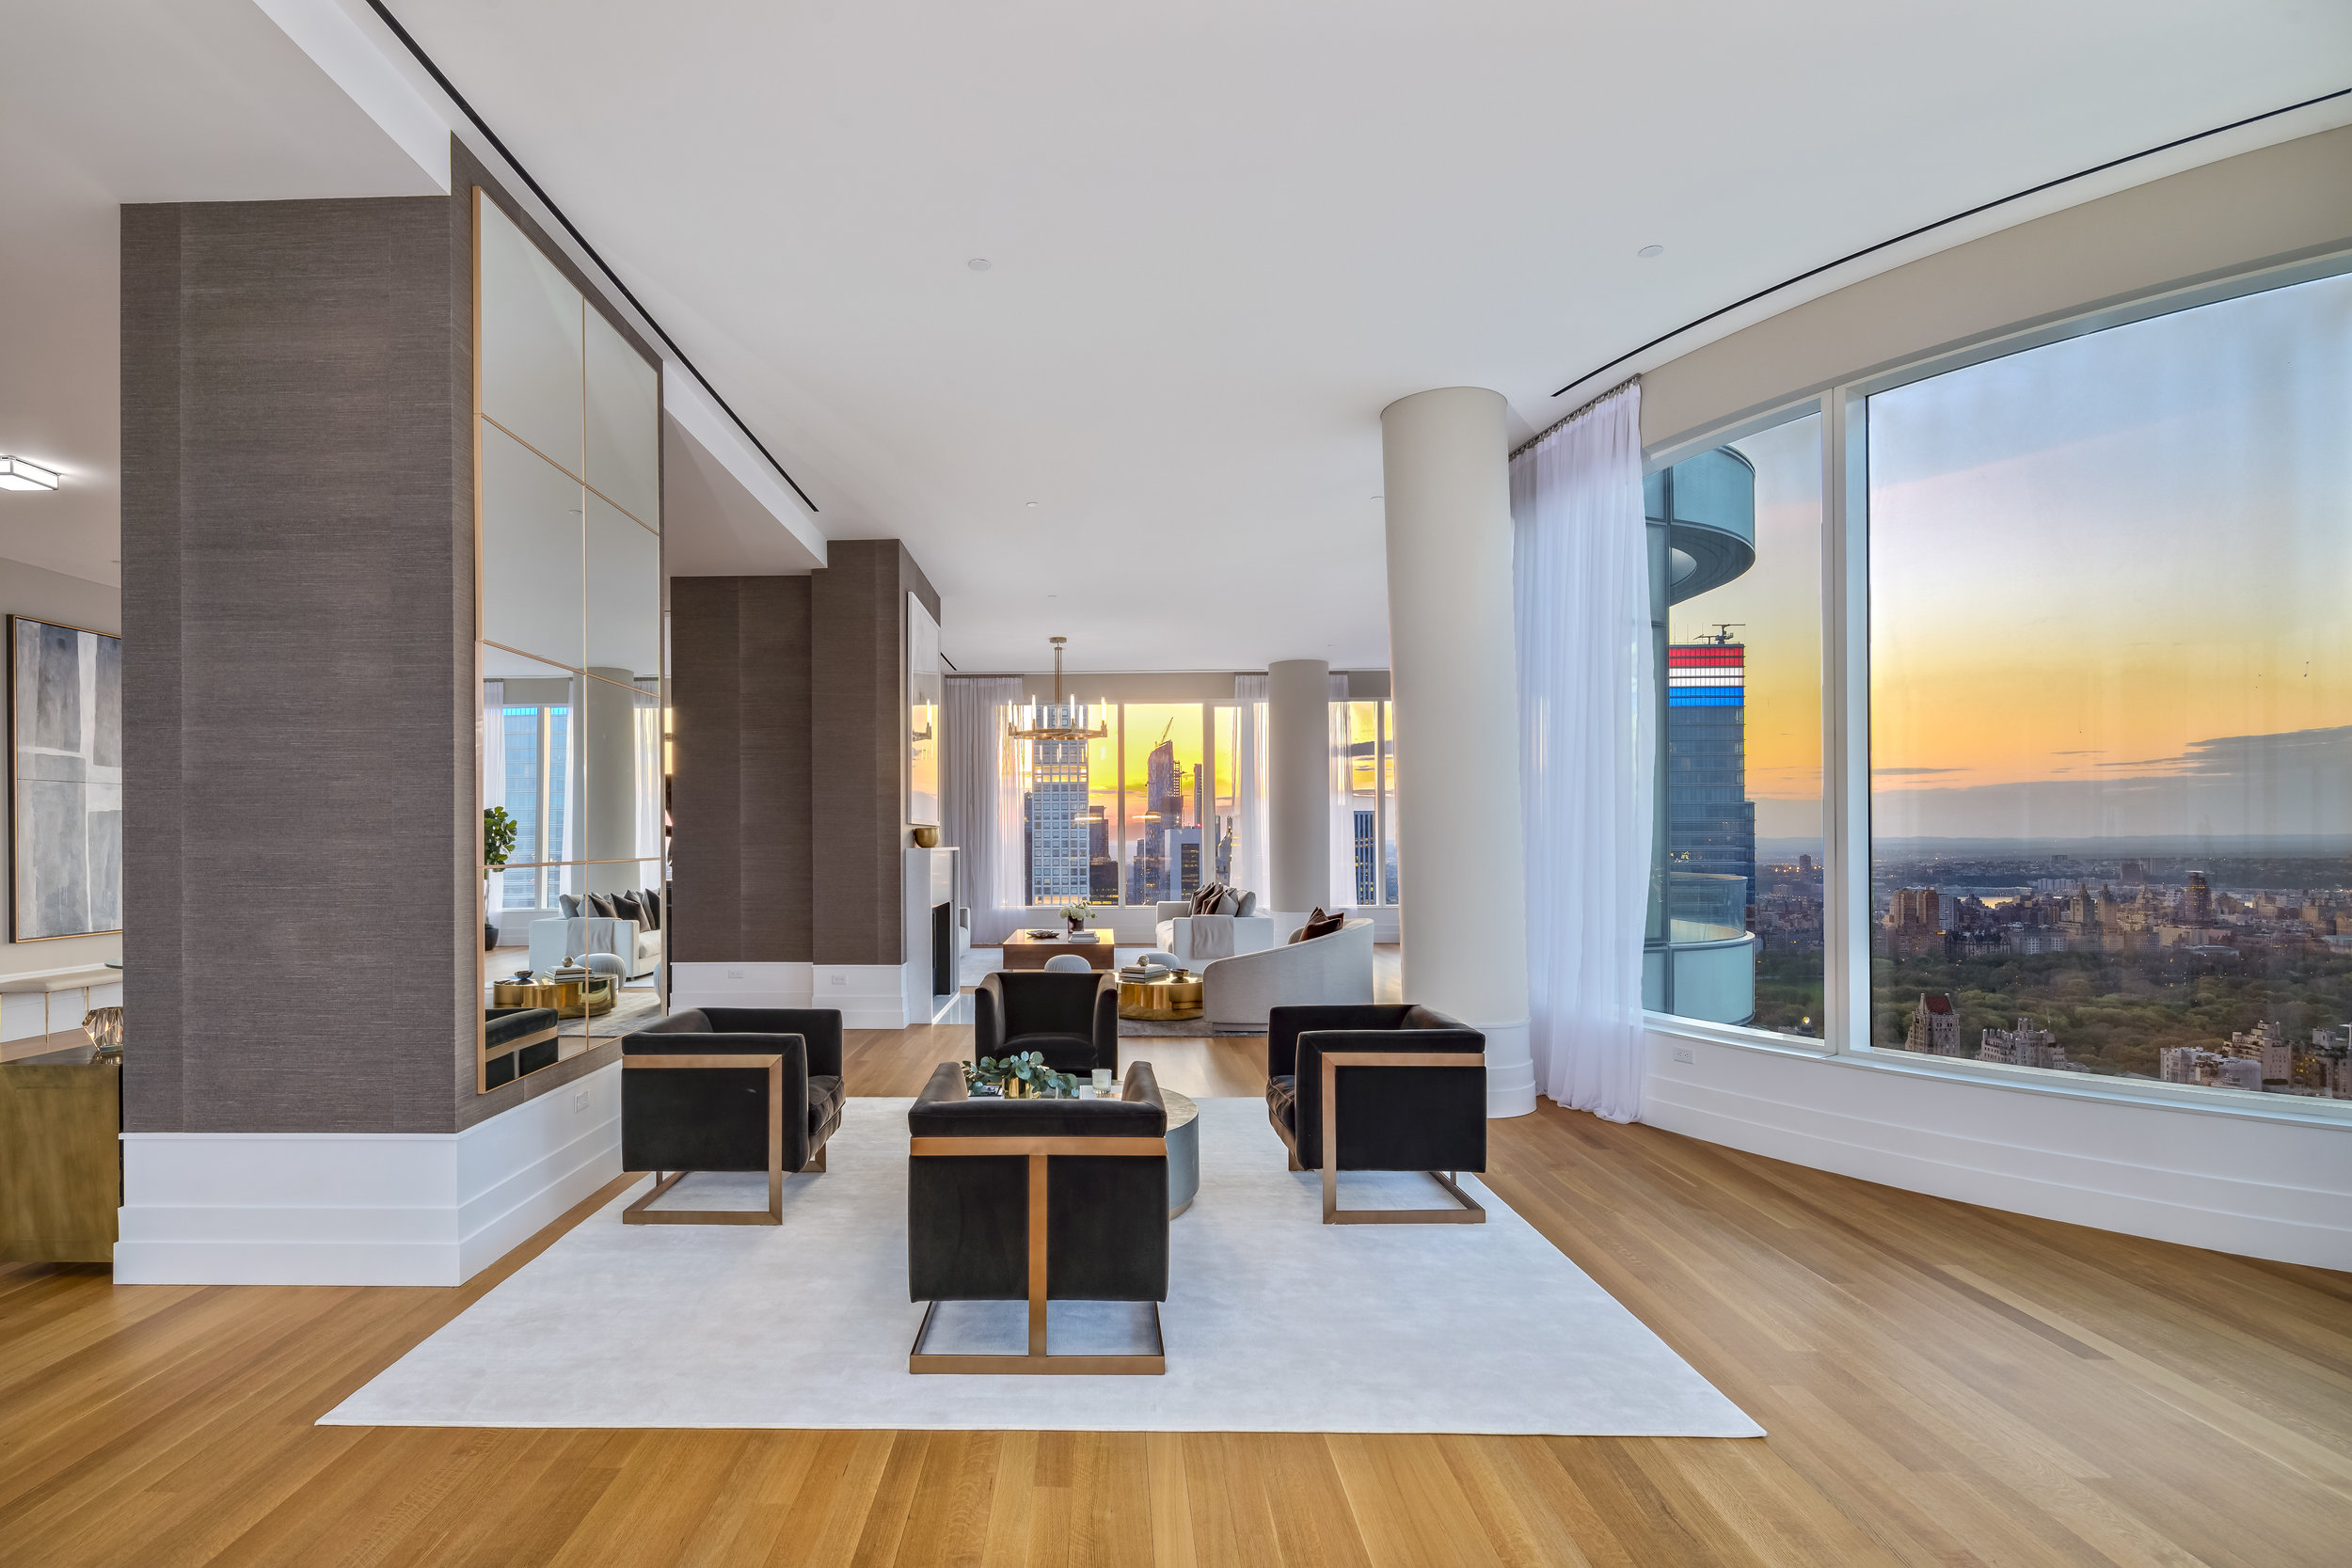 Peek Inside the Penthouse At Billionaire Row's 252 East 57th Street Asking $29.75 Million